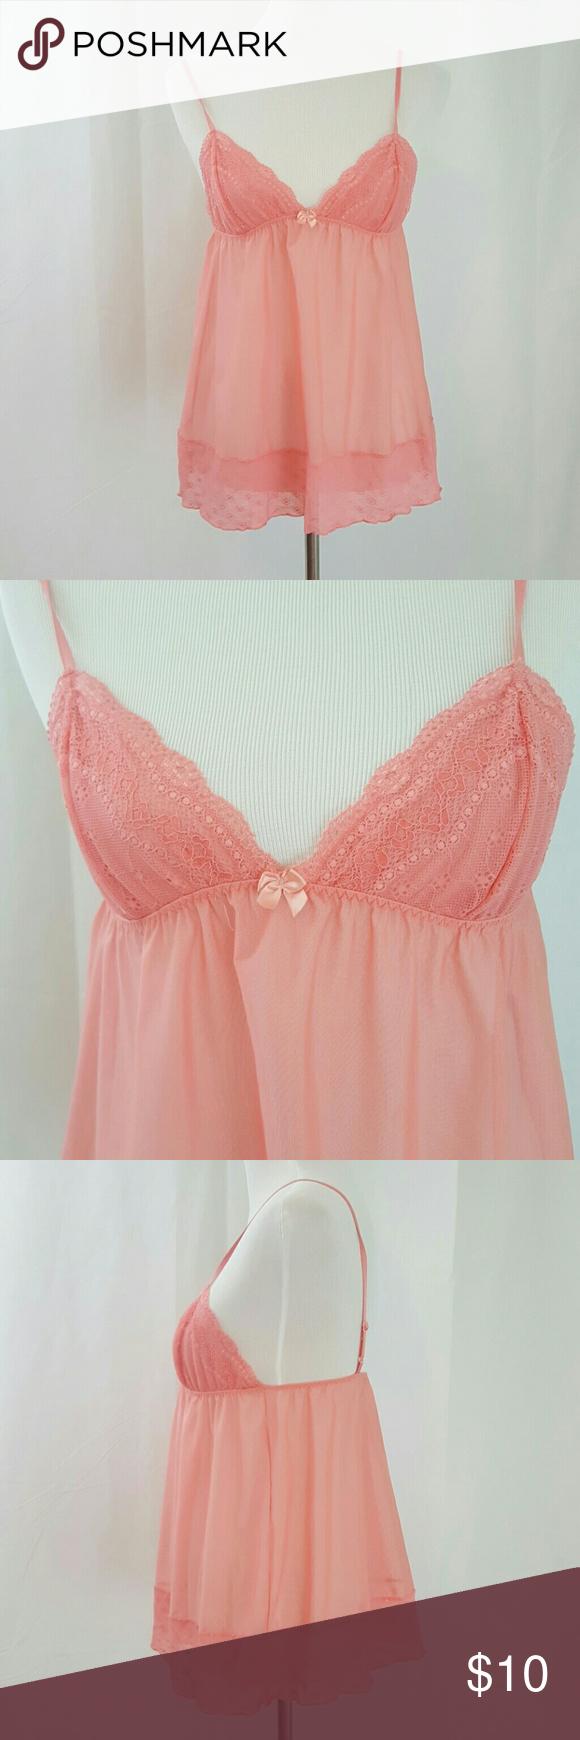 Victoriaus secret pink babydoll top s euc pink babydoll top it has